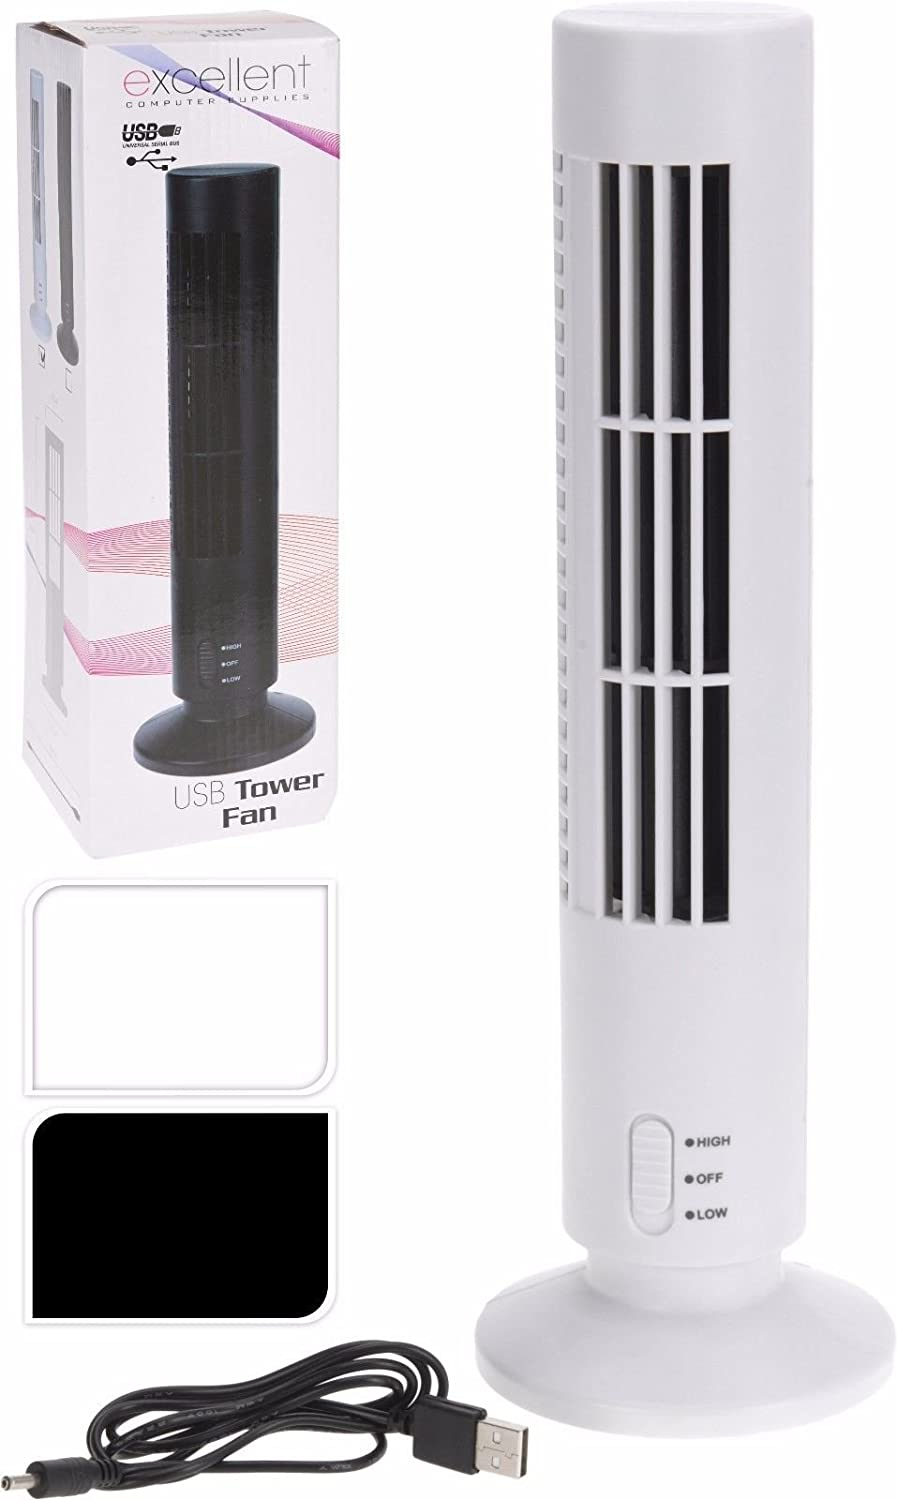 Mini USB Home Office Desk Cooling Tower Fan (White) Koopman International